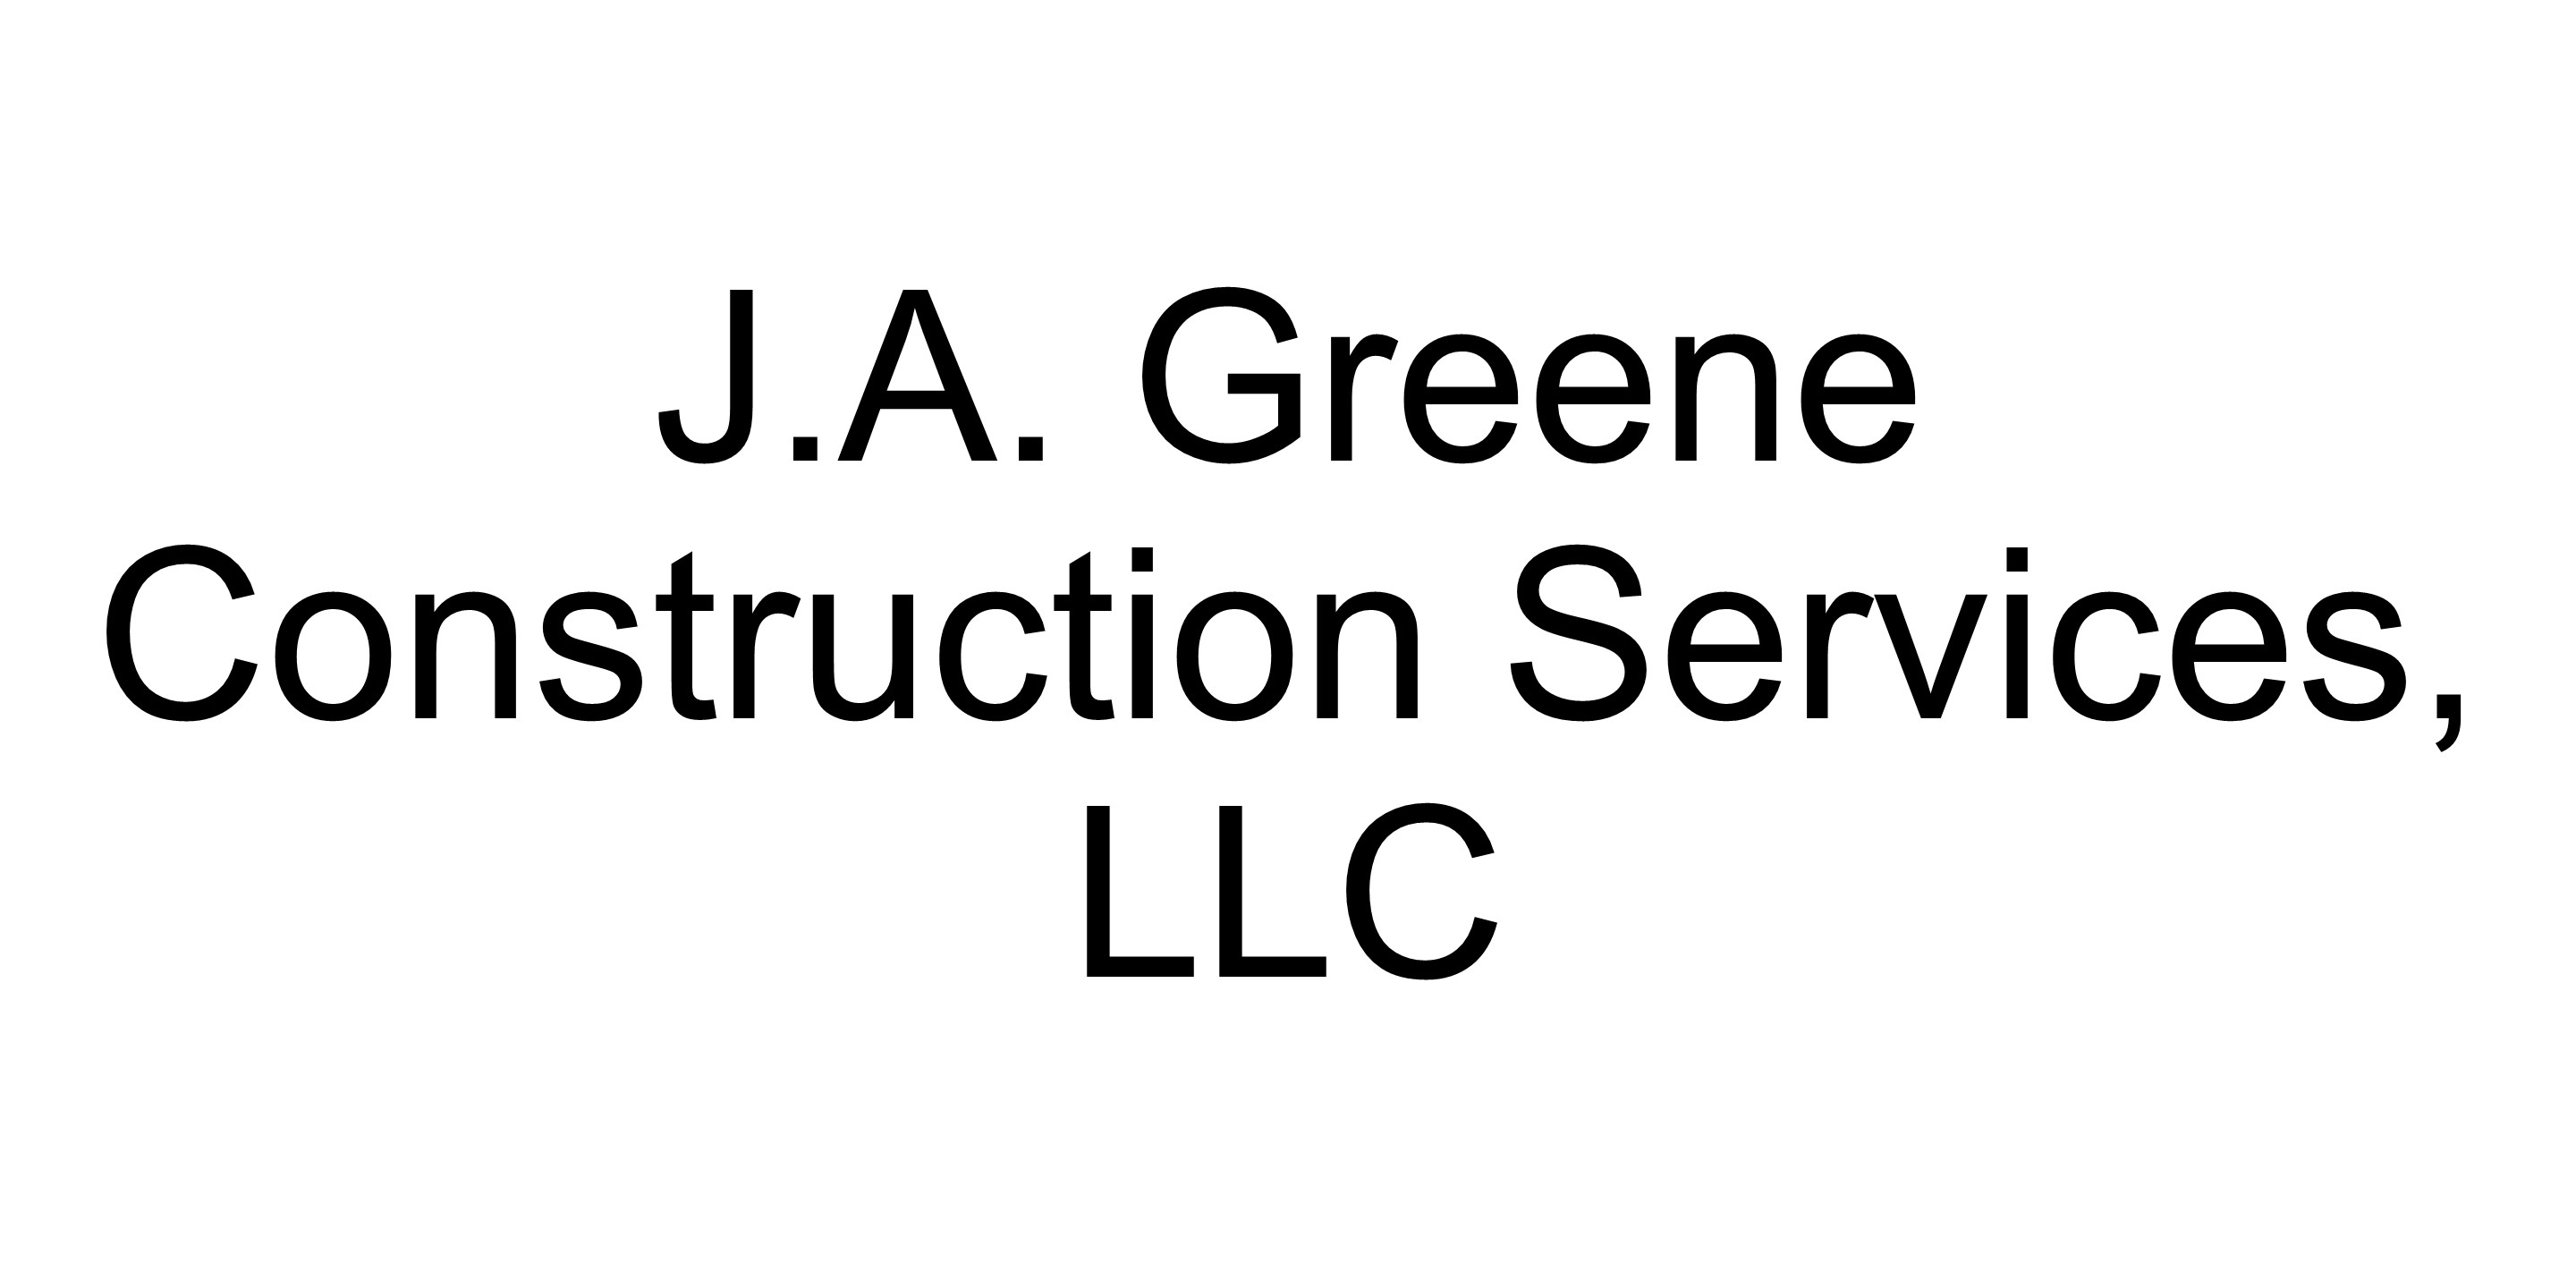 J.A. Greene Construction Services logo